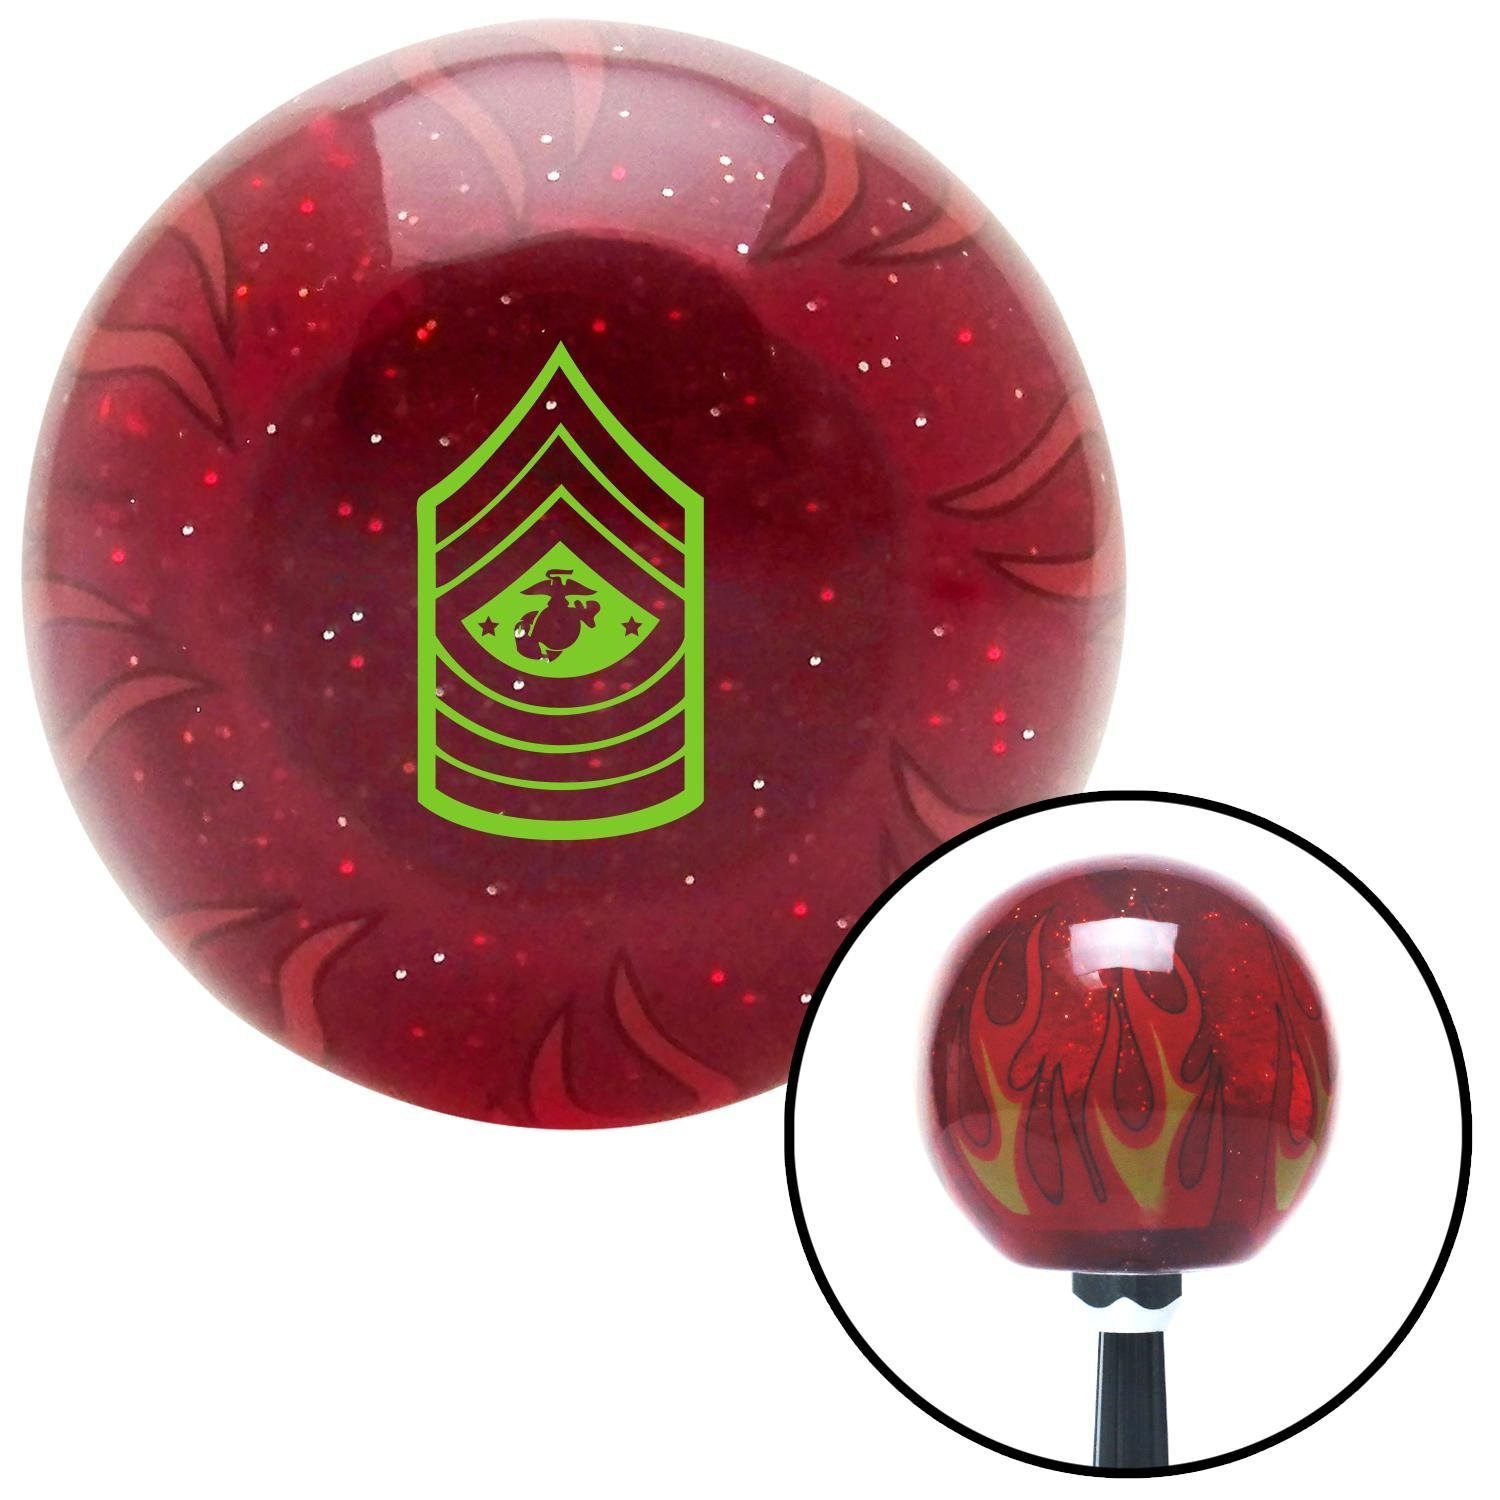 American Shifter 241664 Red Flame Metal Flake Shift Knob with M16 x 1.5 Insert Green 11 Sergeant Major of The Marine Corps